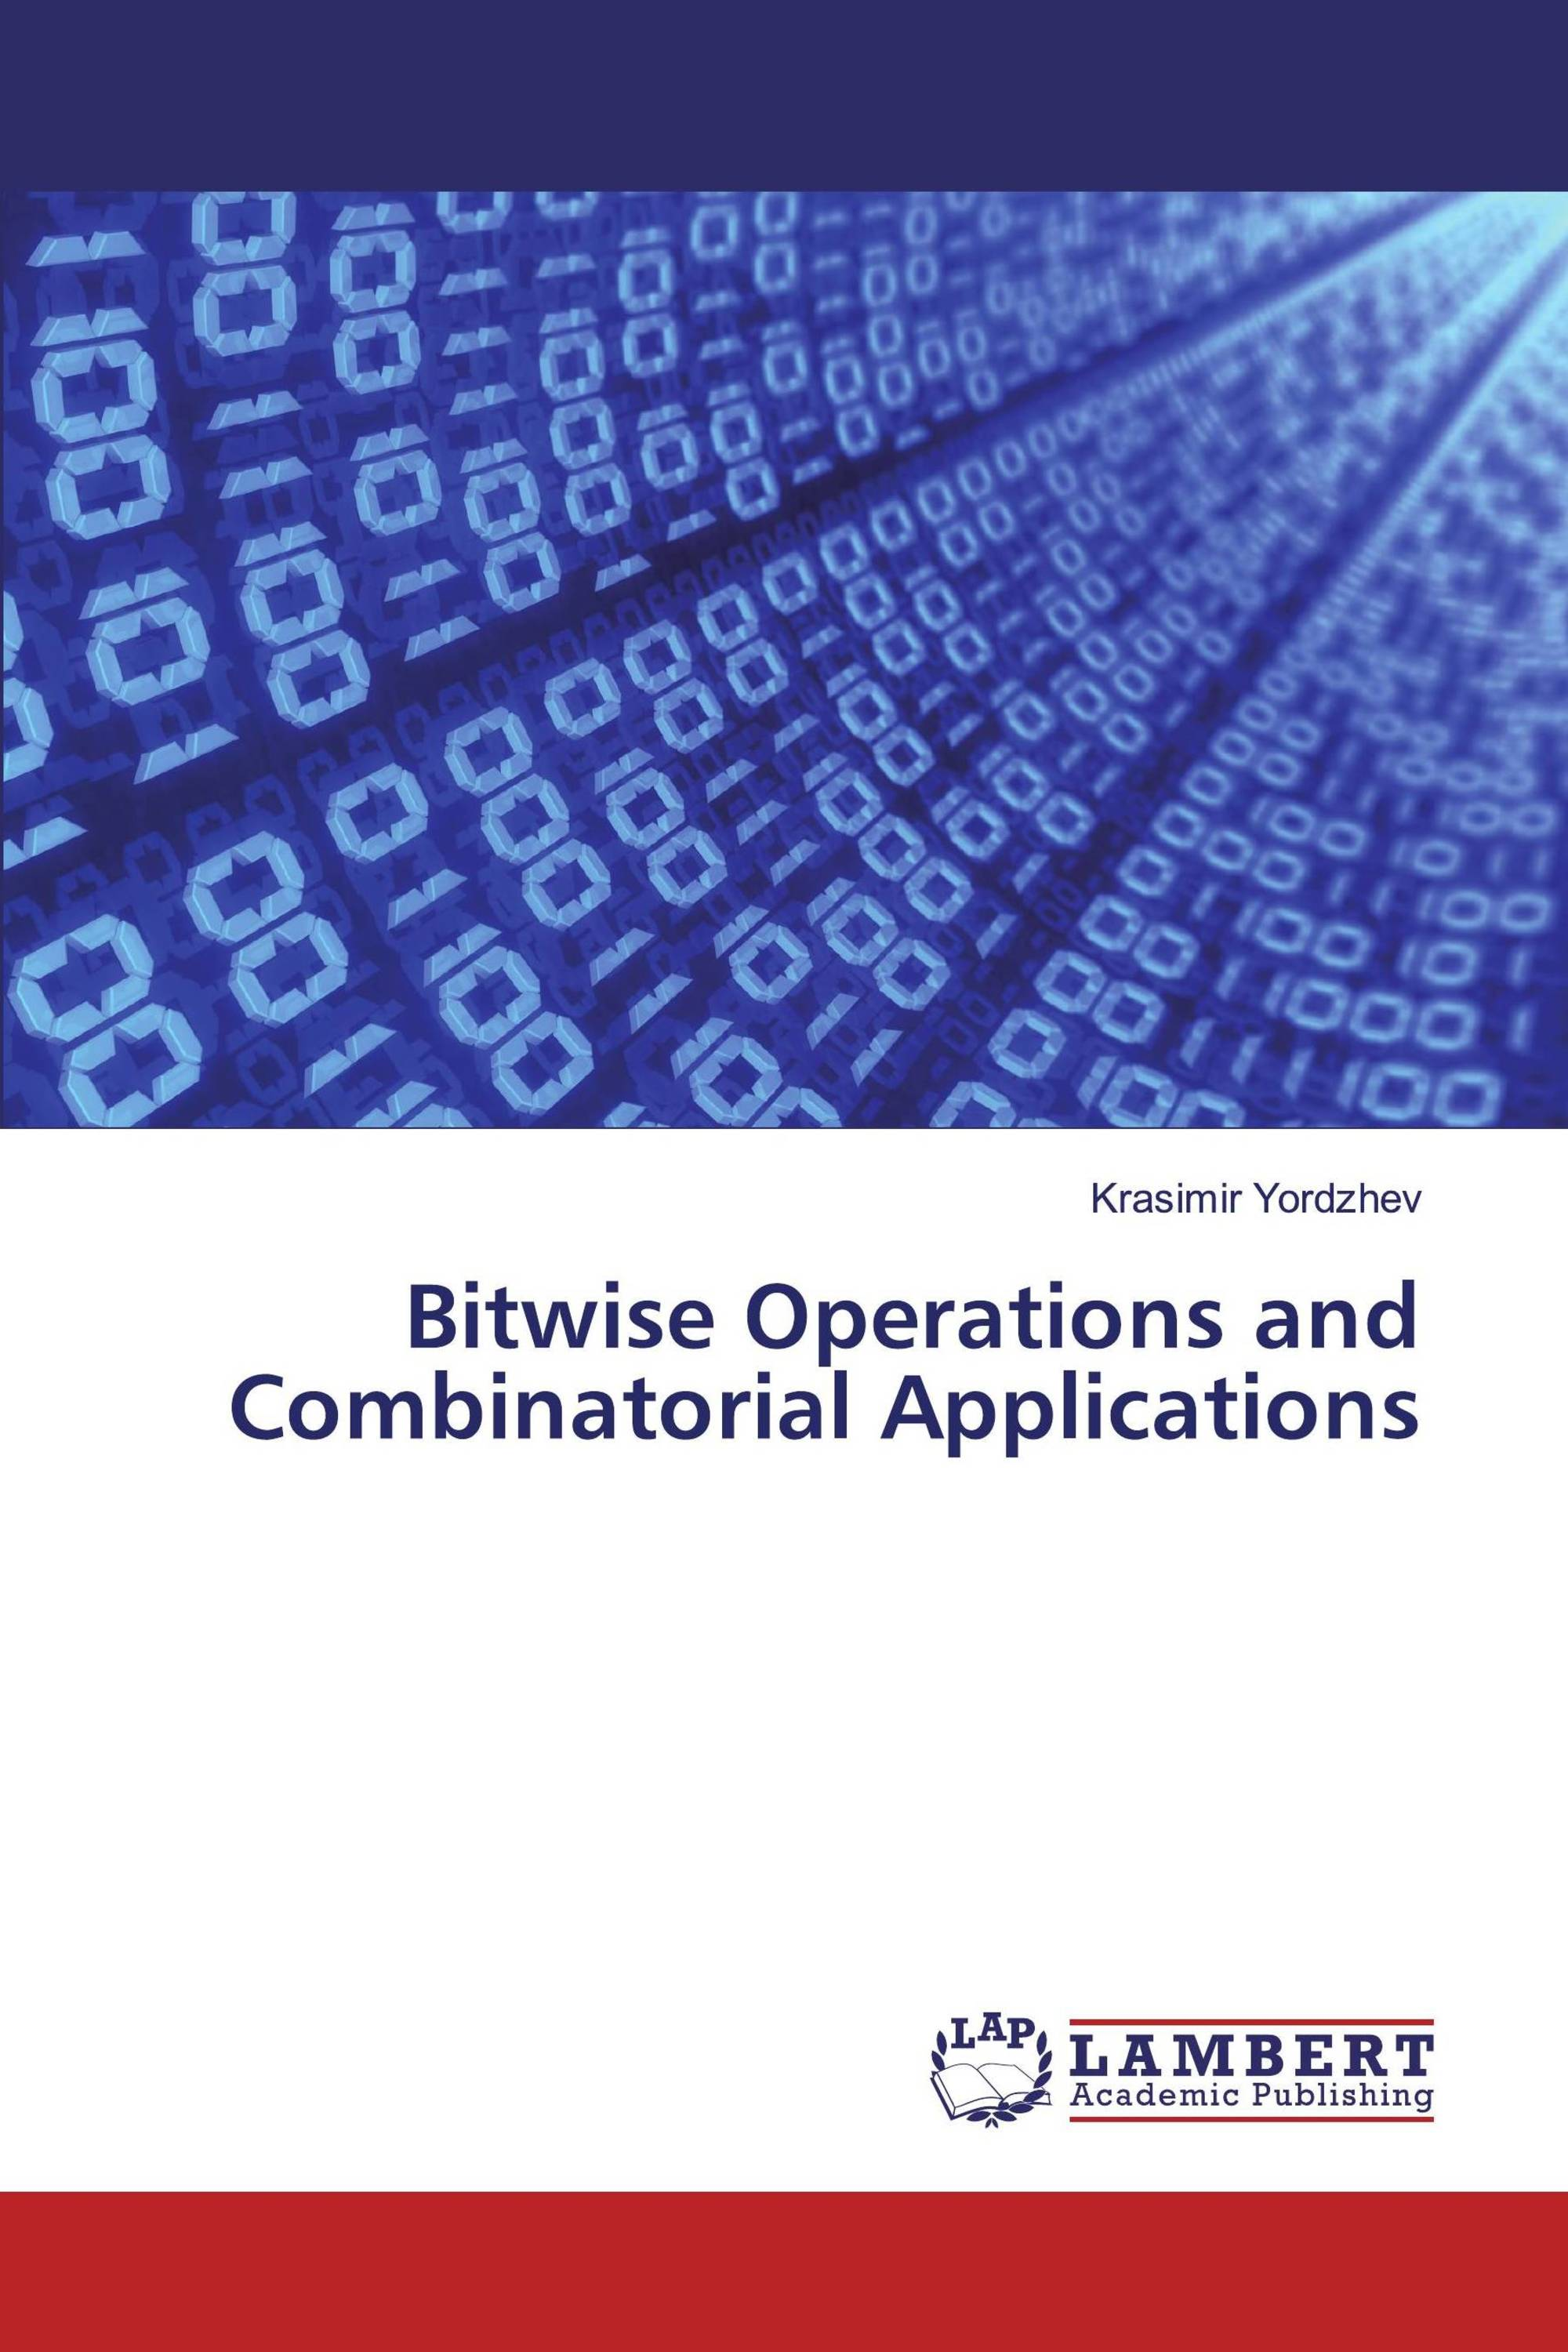 Bitwise Operations and Combinatorial Applications / 978-613